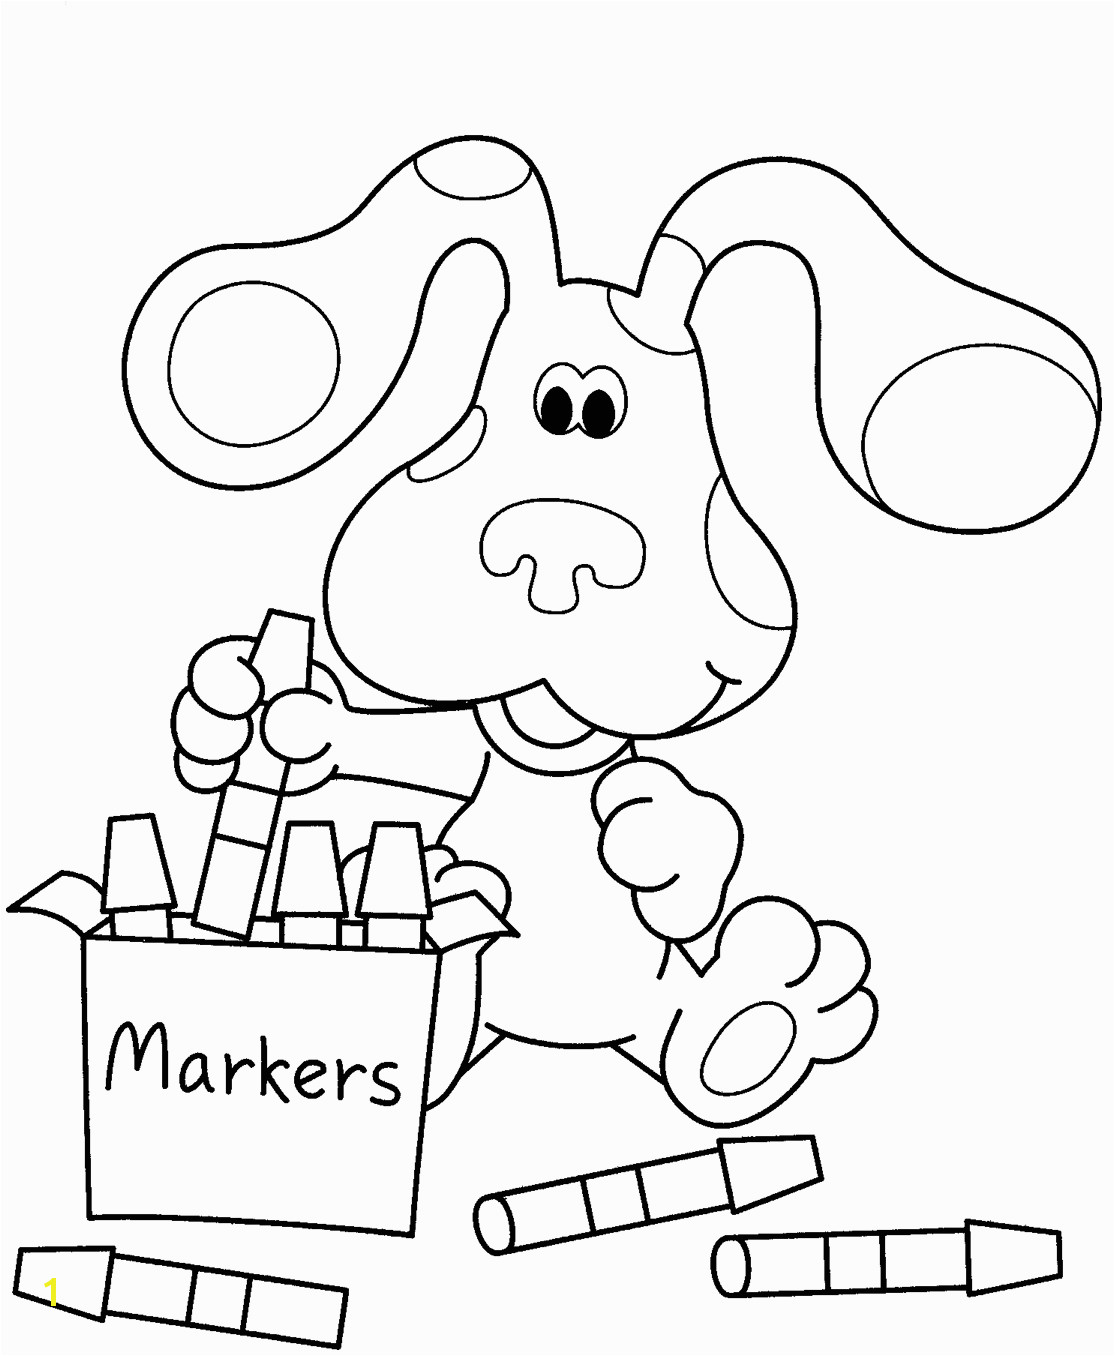 coloring pages games free online Turn Into Superb Coloring Pages Crayola